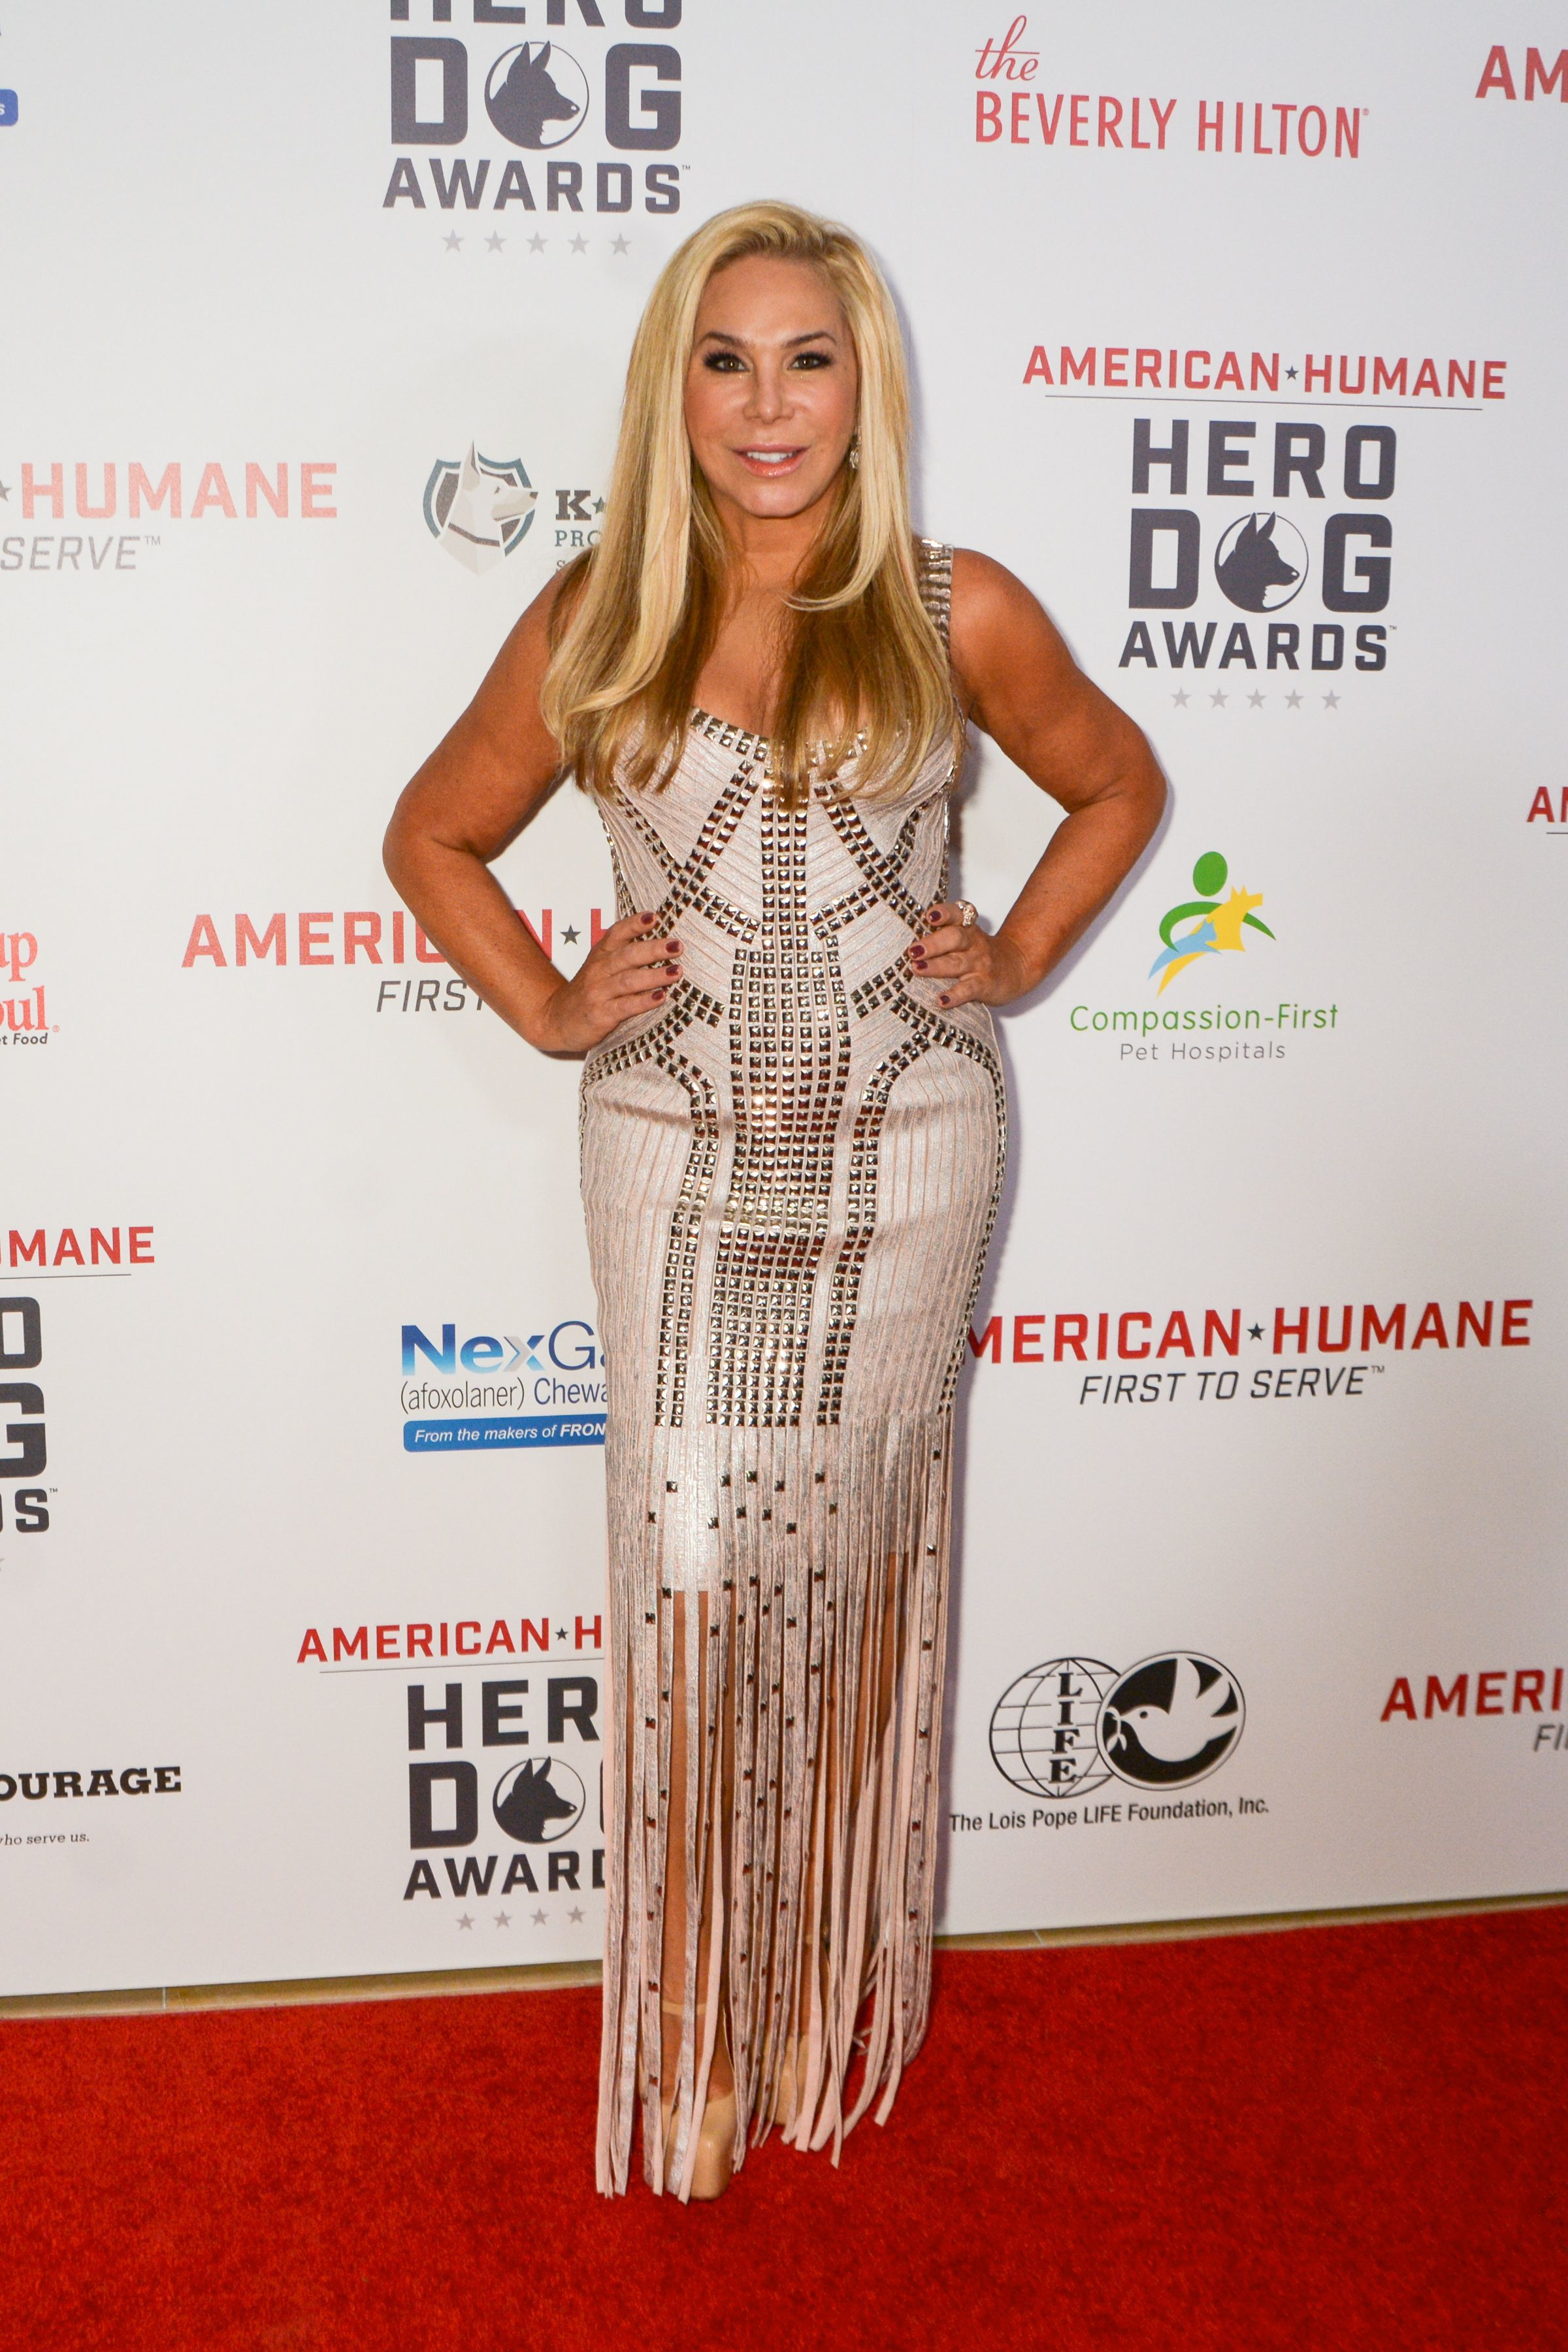 Adrienne Maloof attends the 7th Annual American Humane Hero Dogs Awards in Beverly Hills, Calif., on Sept. 16, 2017.